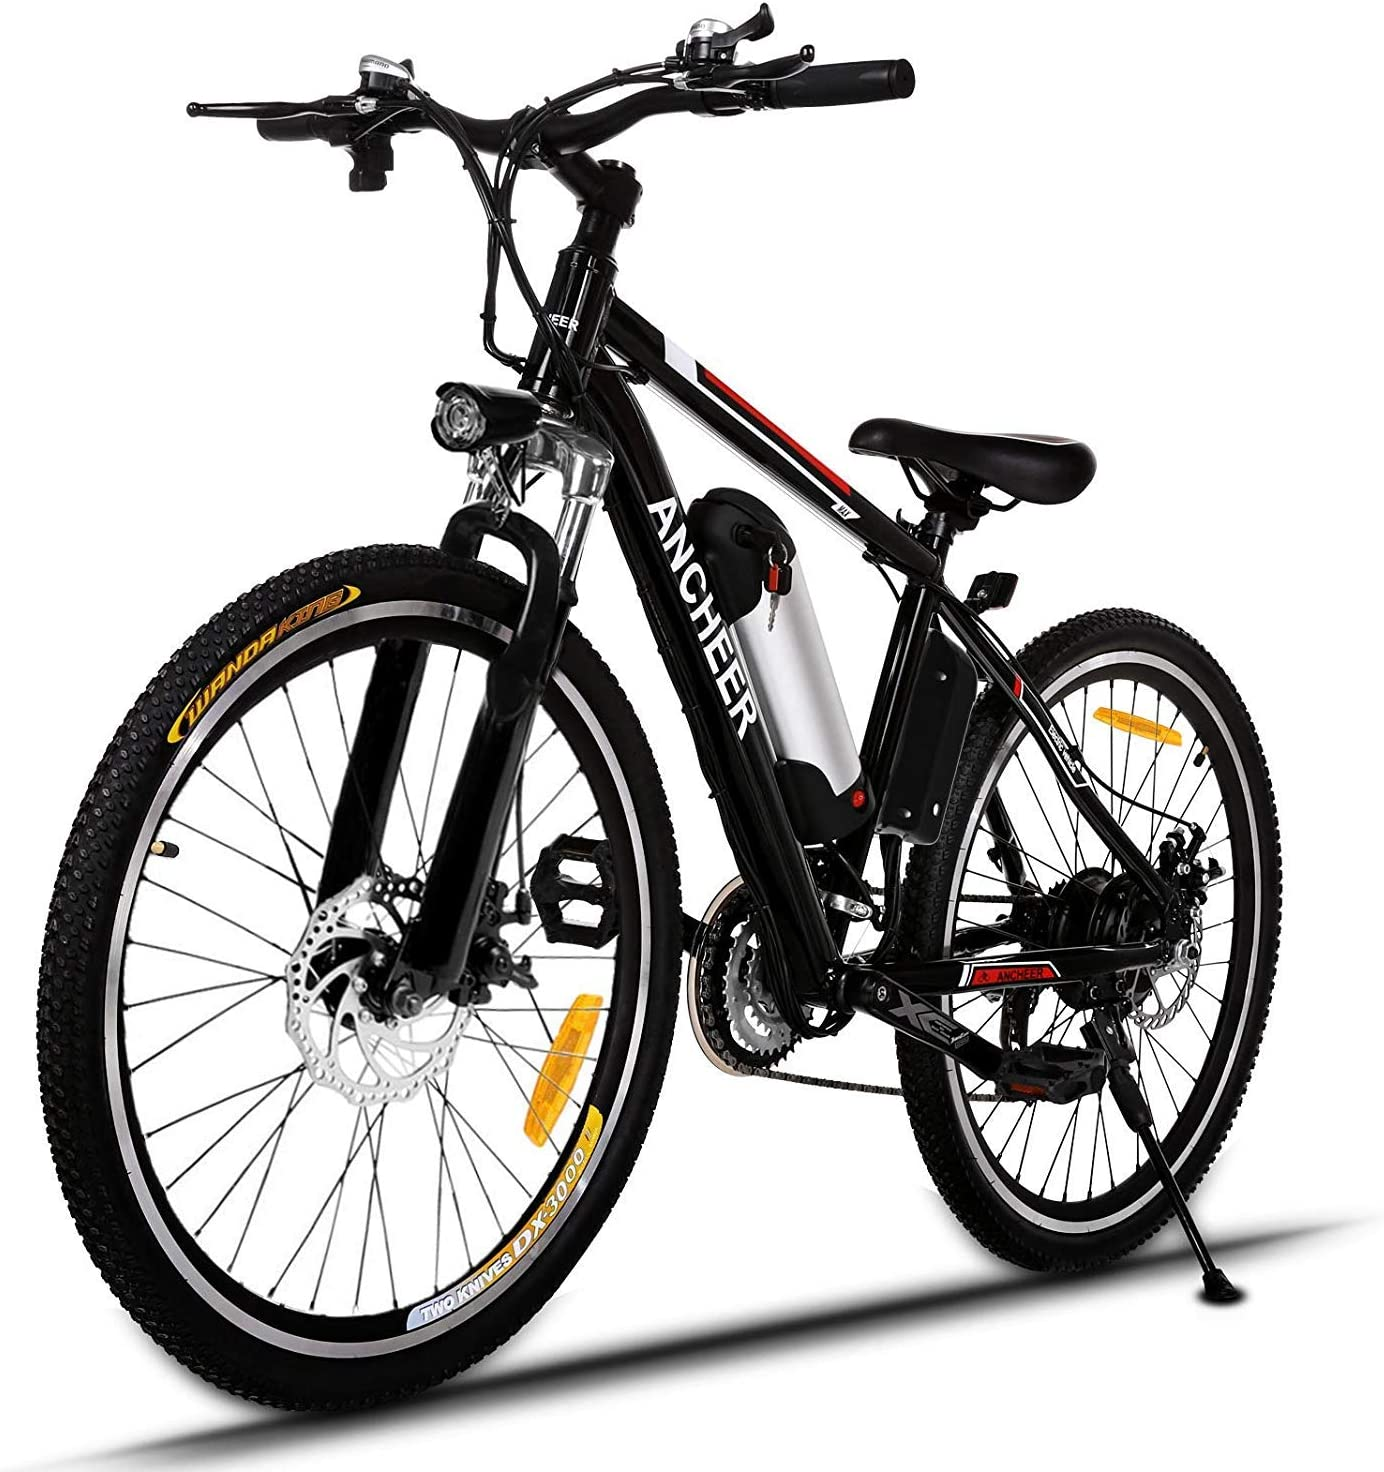 best electric bike under 1000: ANCHEER 500W/250W Electric Bike Adult Electric Mountain Bike